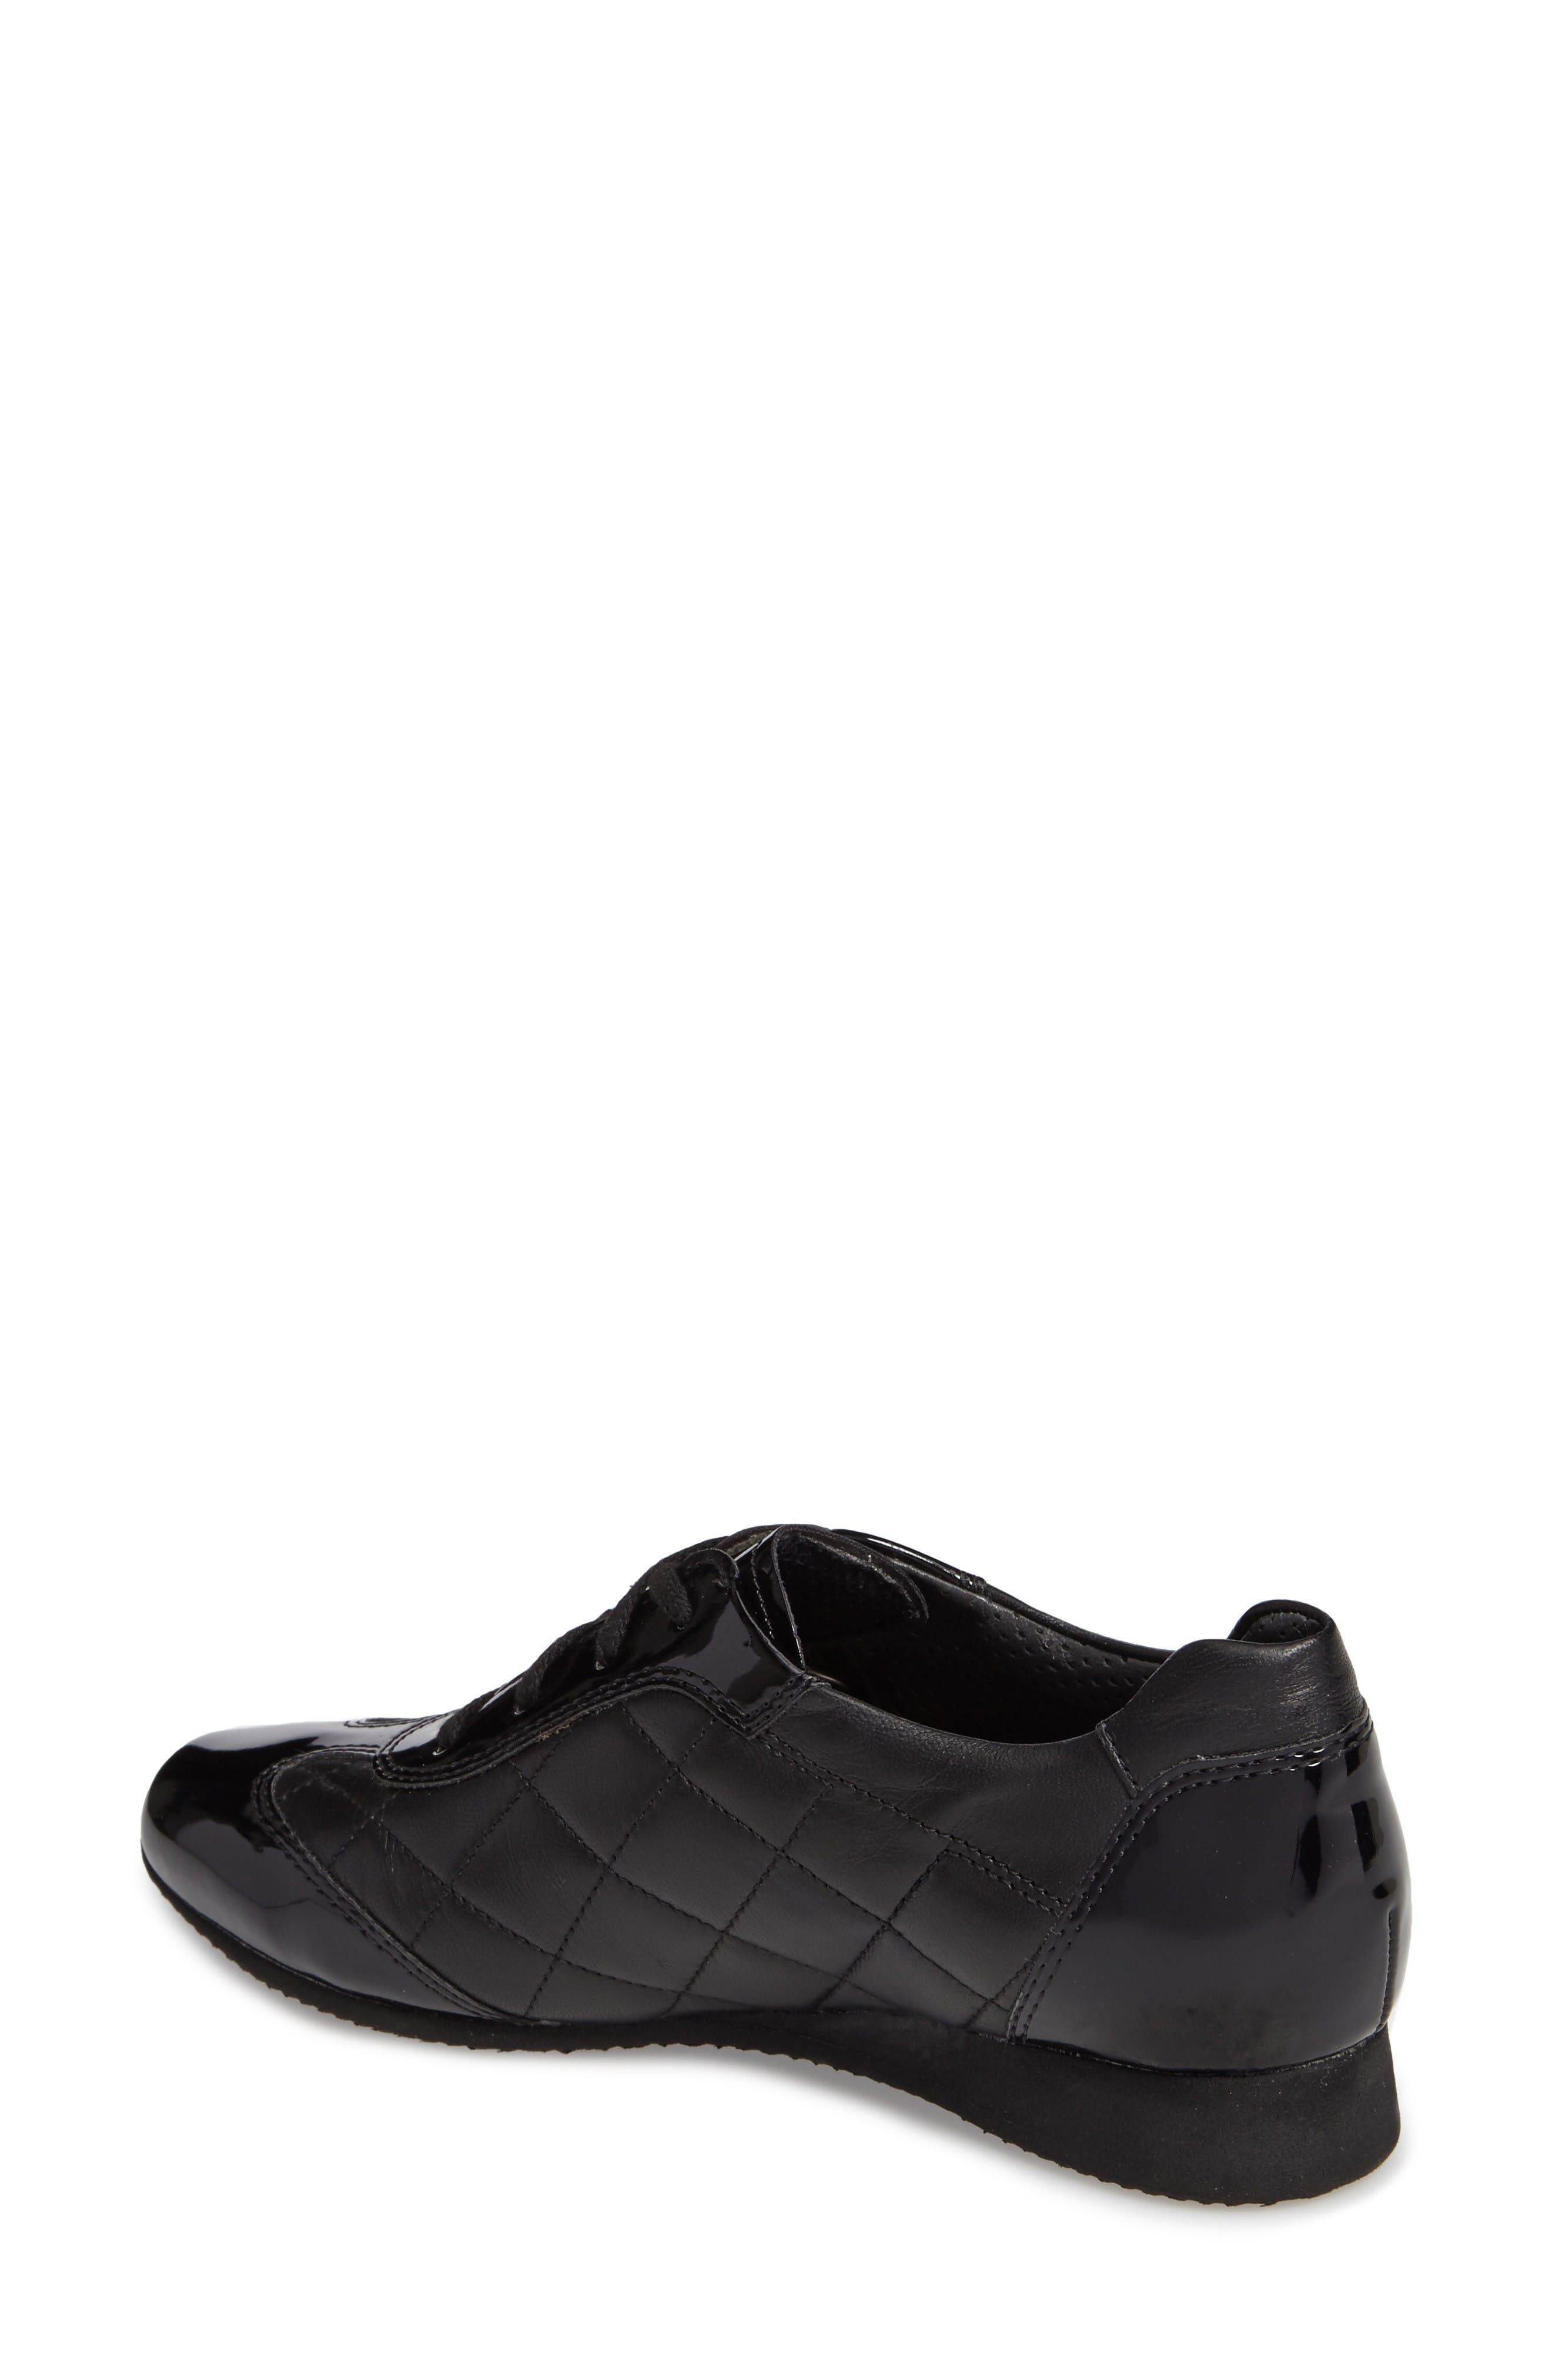 Ilana Sneaker,                             Alternate thumbnail 2, color,                             Black Quilted Leather